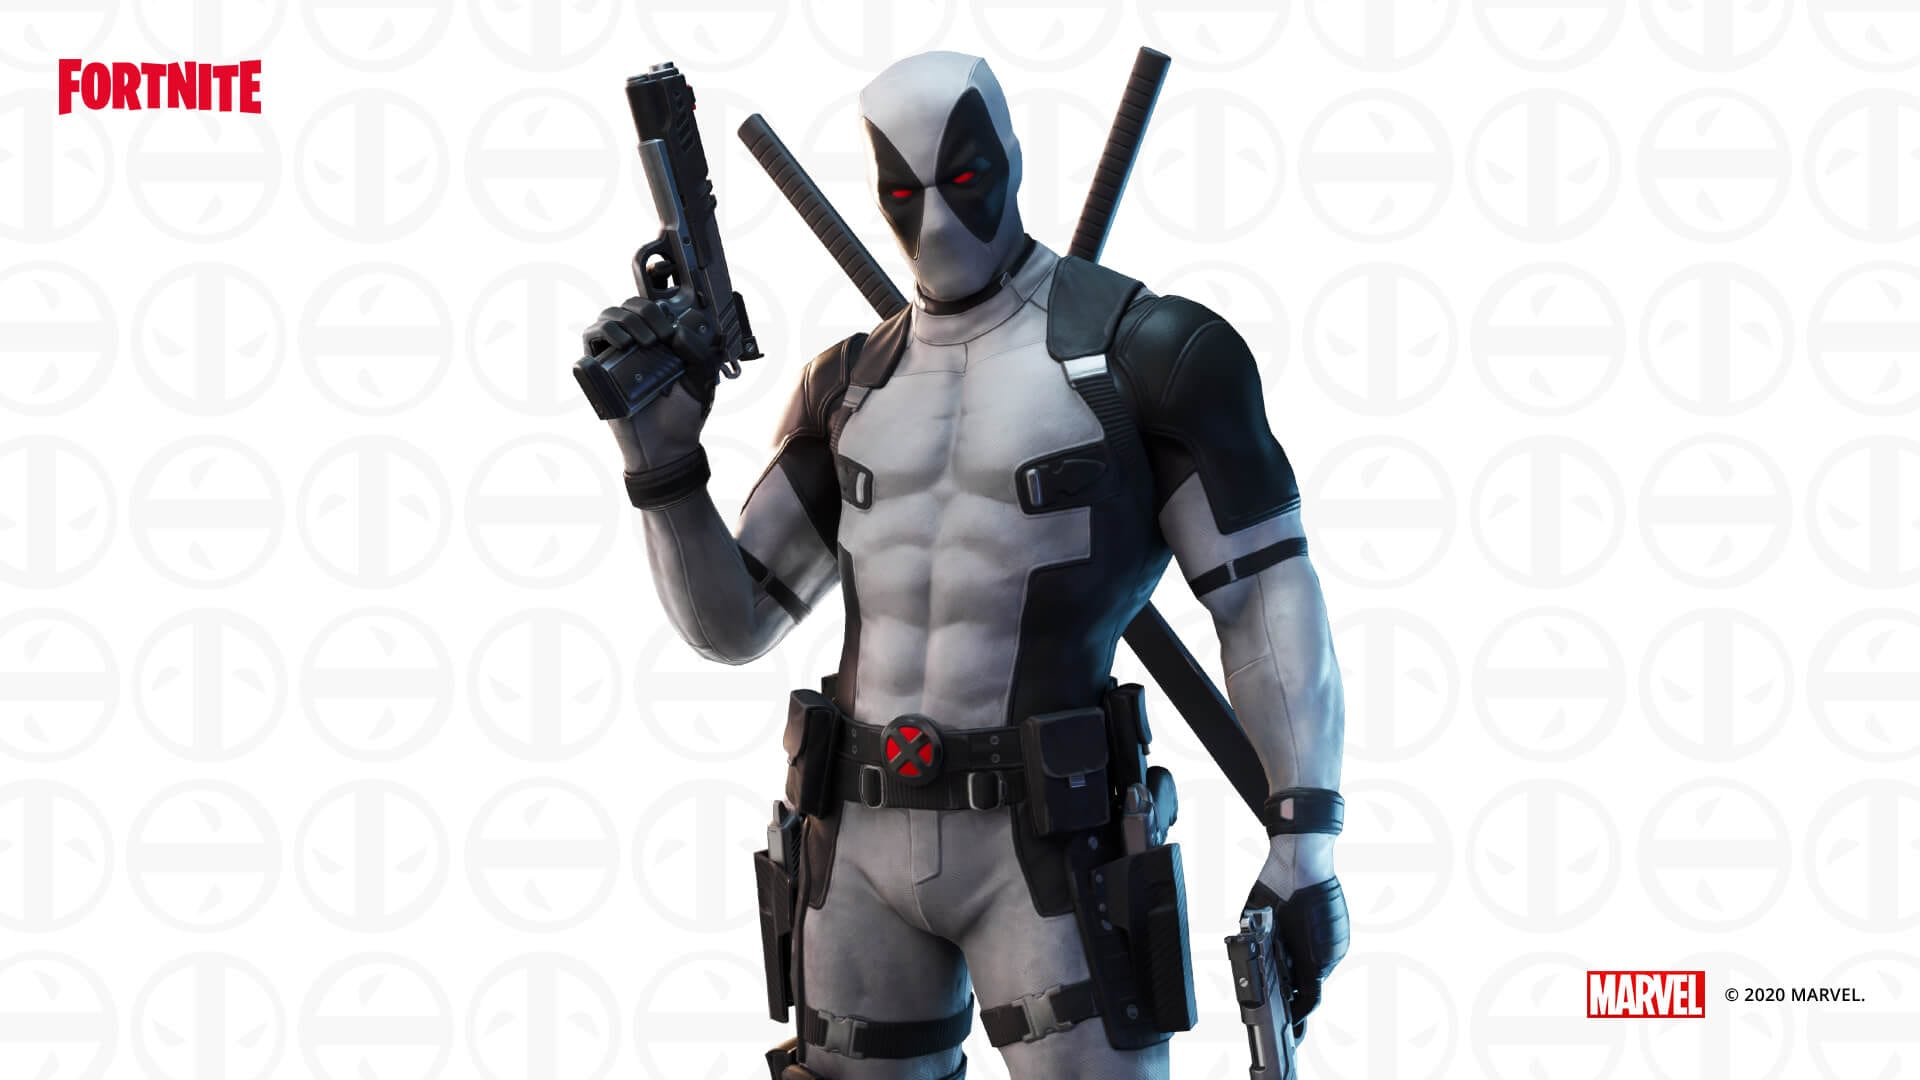 Fortnite Adds Deadpool's X-Force Skin and Other Members